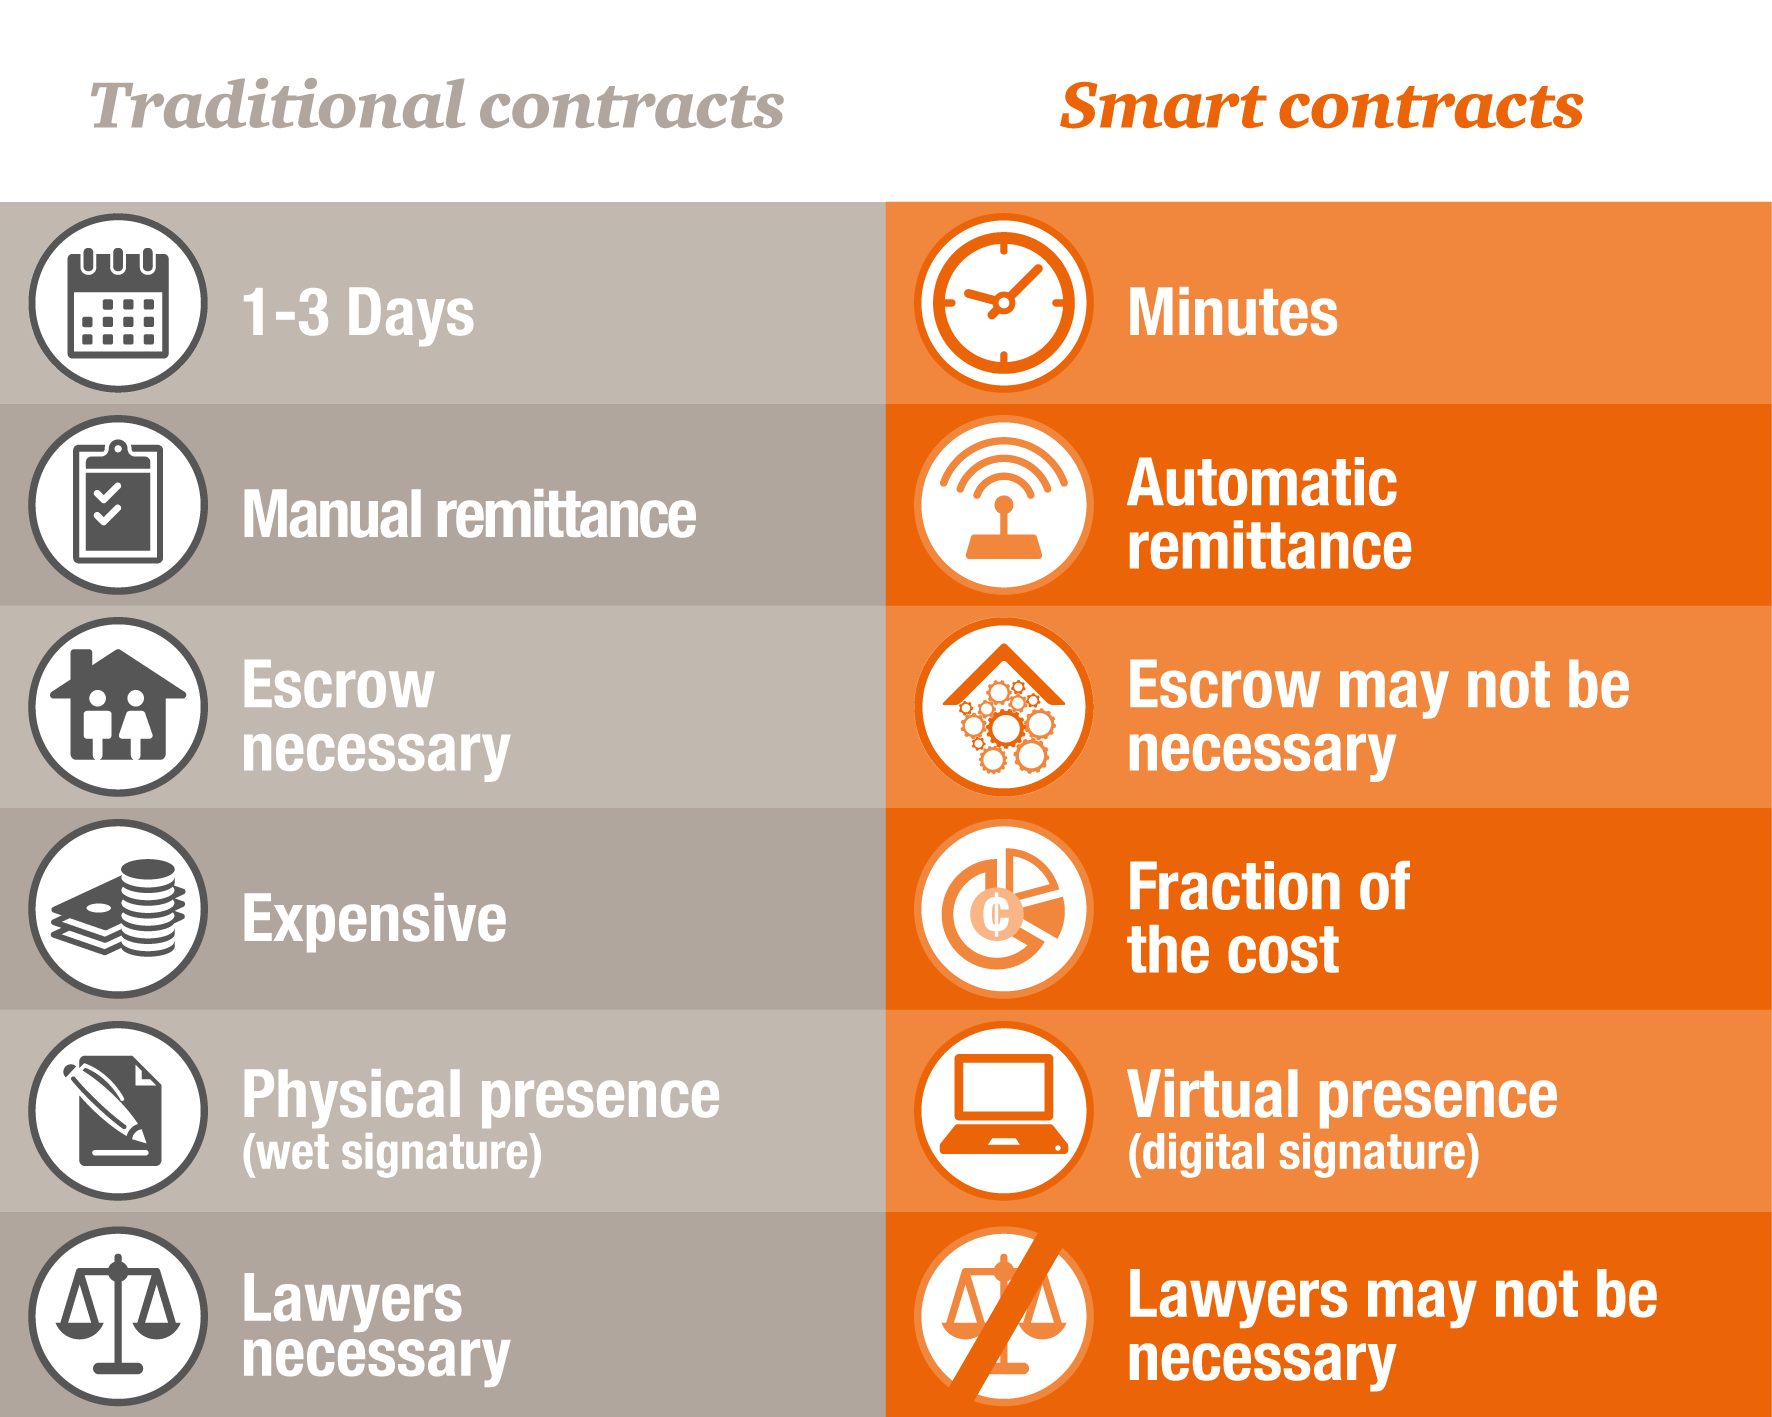 An infographic depicting differences between traditional and smart contracts